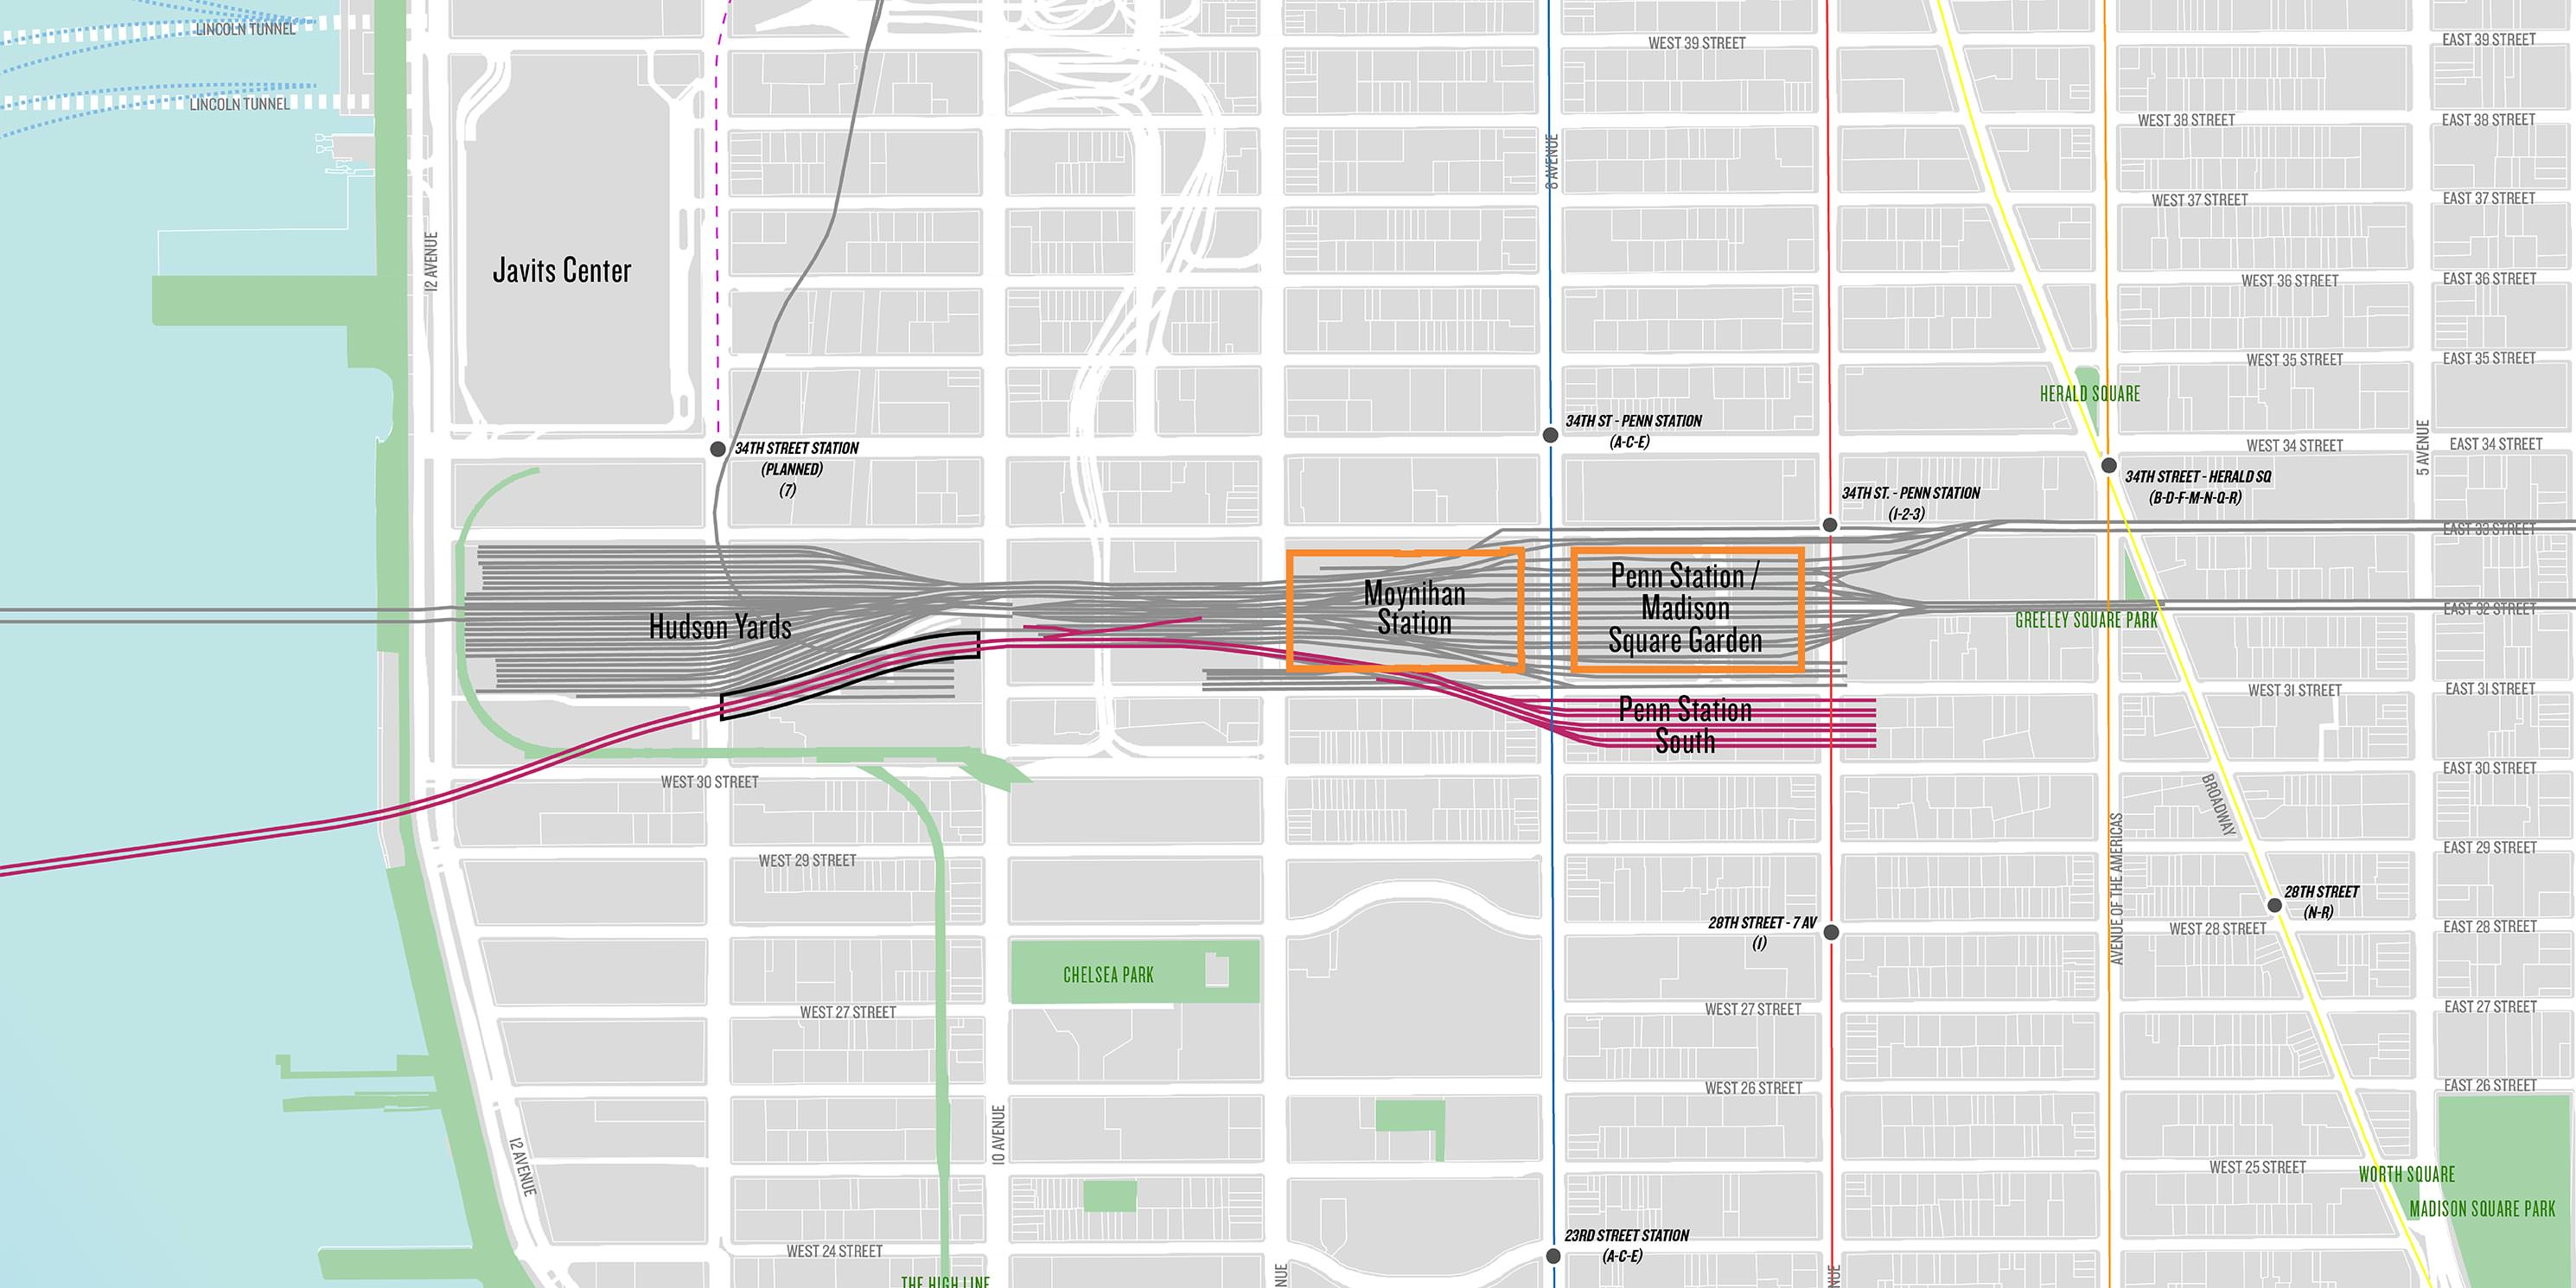 map showing rail lines connecting Hudson Yards to Penn Station